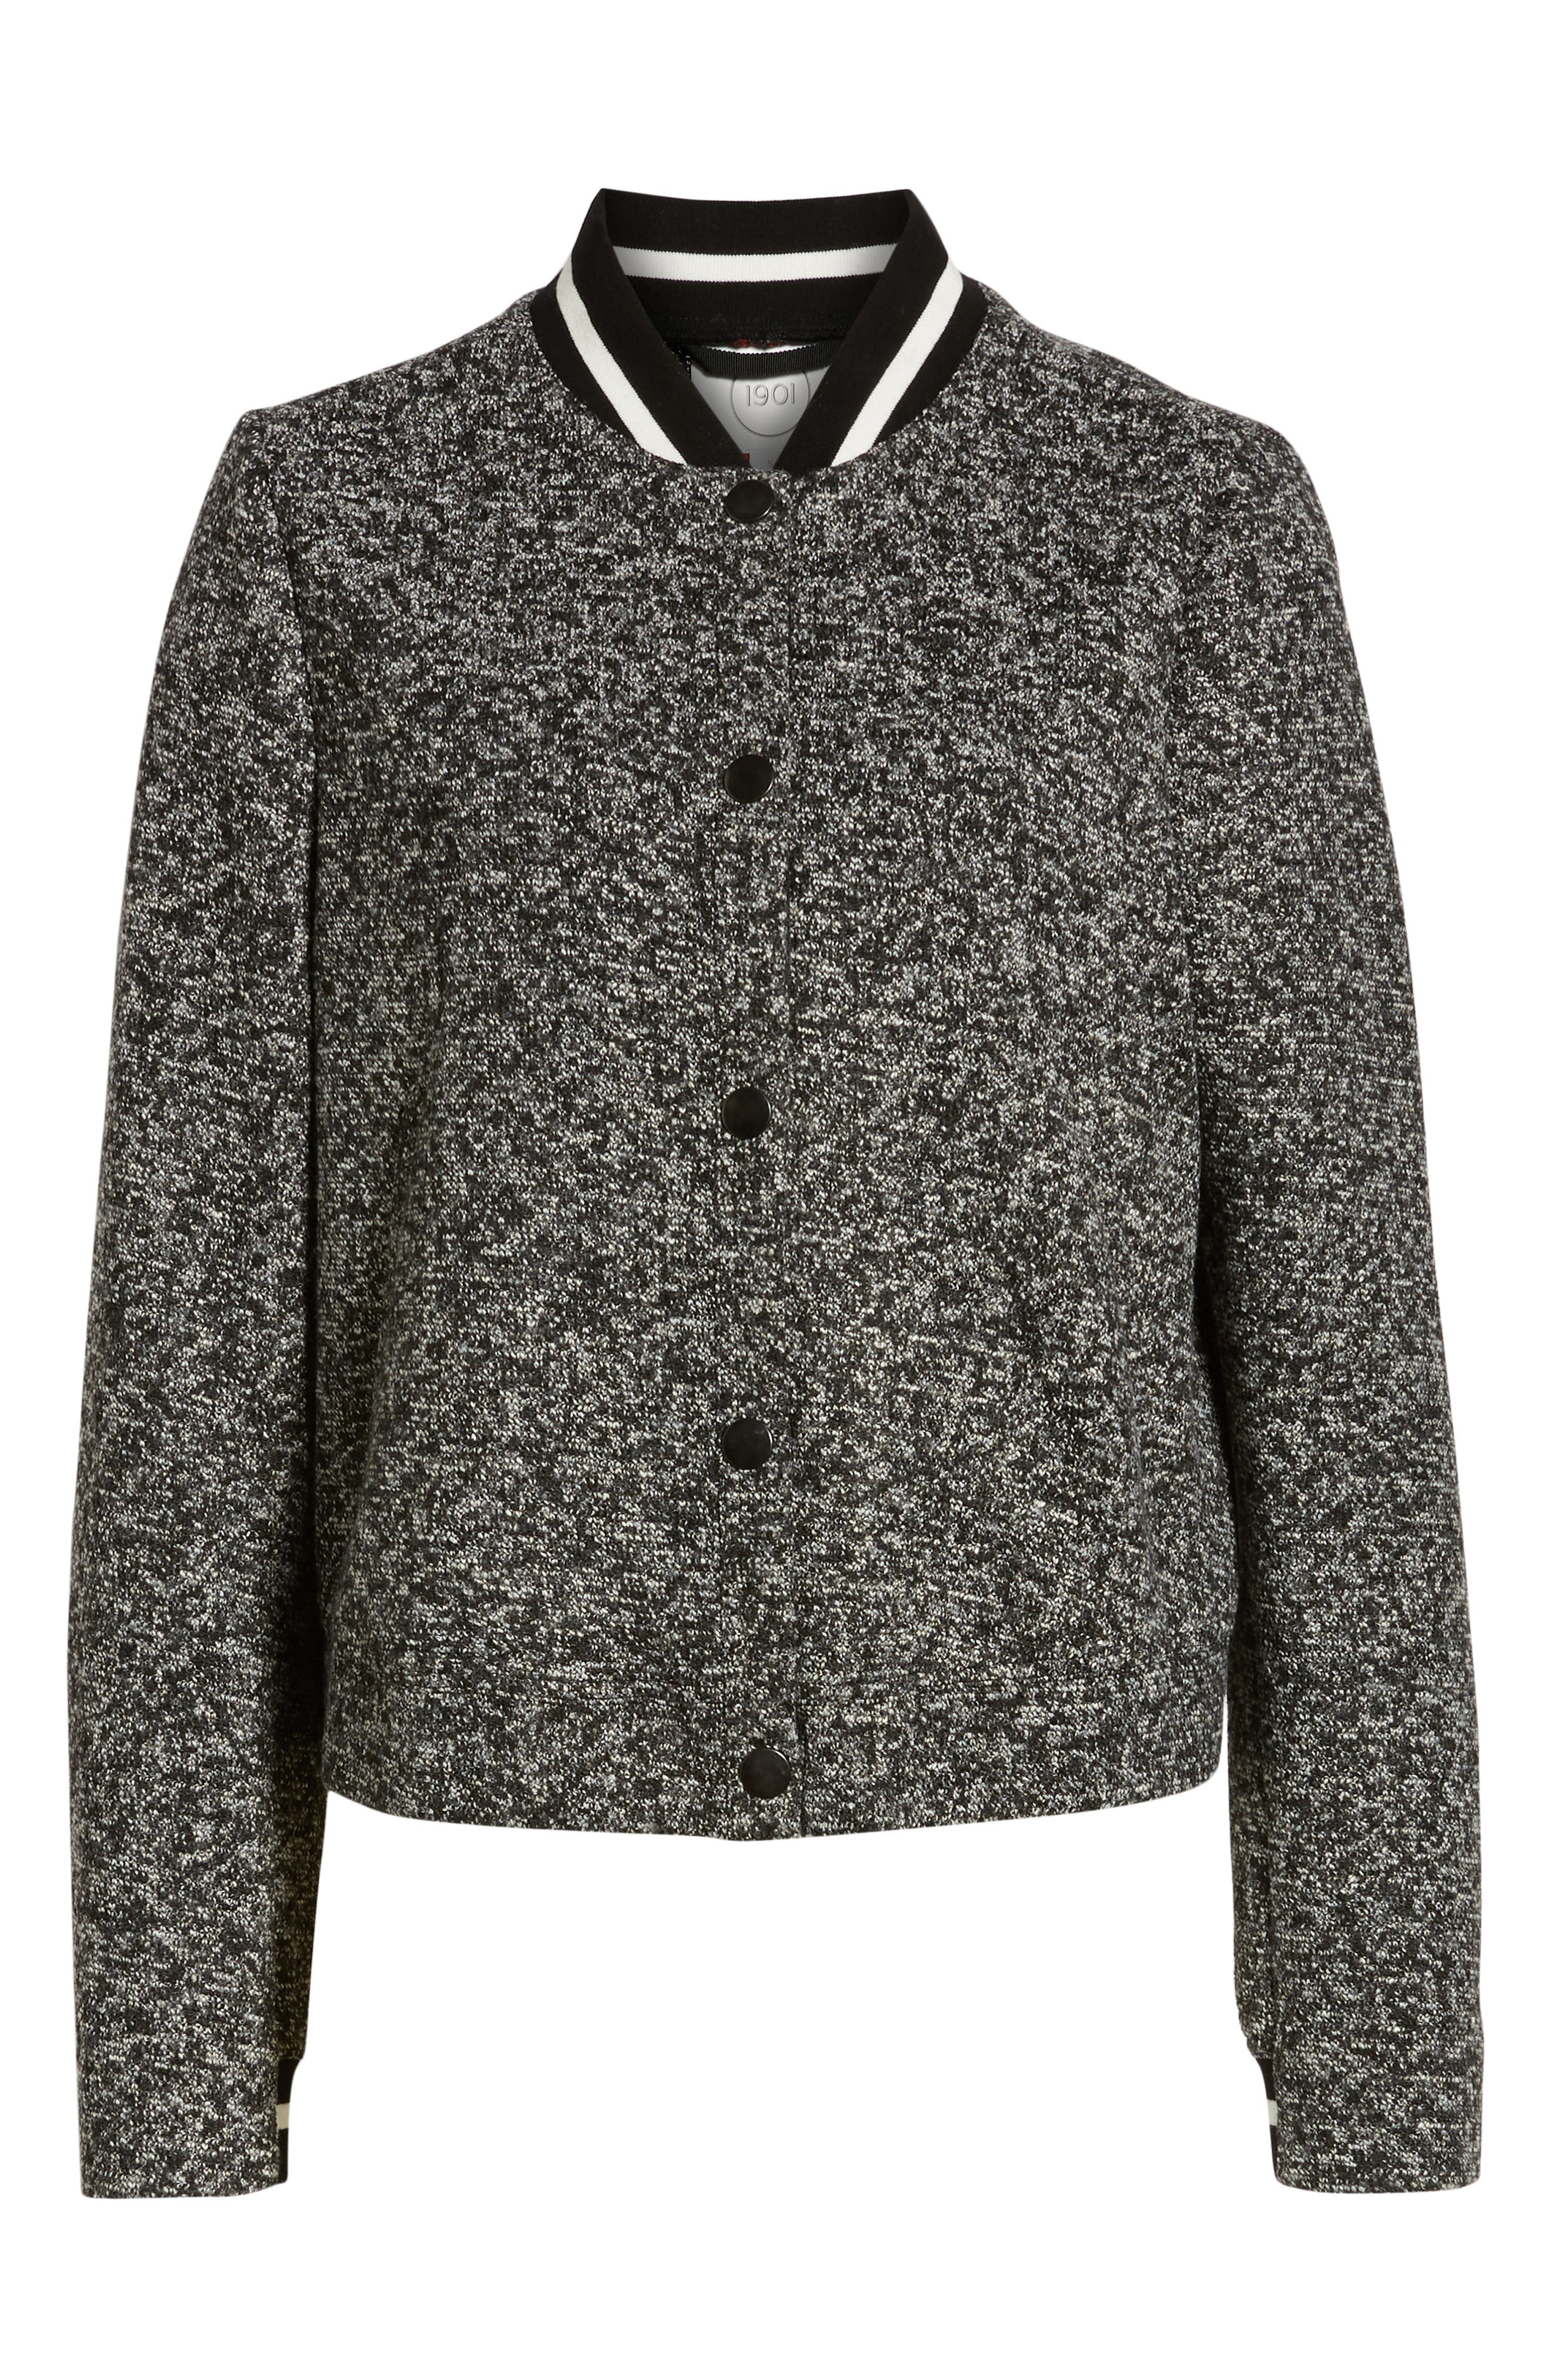 Tweed Bomber Jacket,                             Alternate thumbnail 5, color,                             001